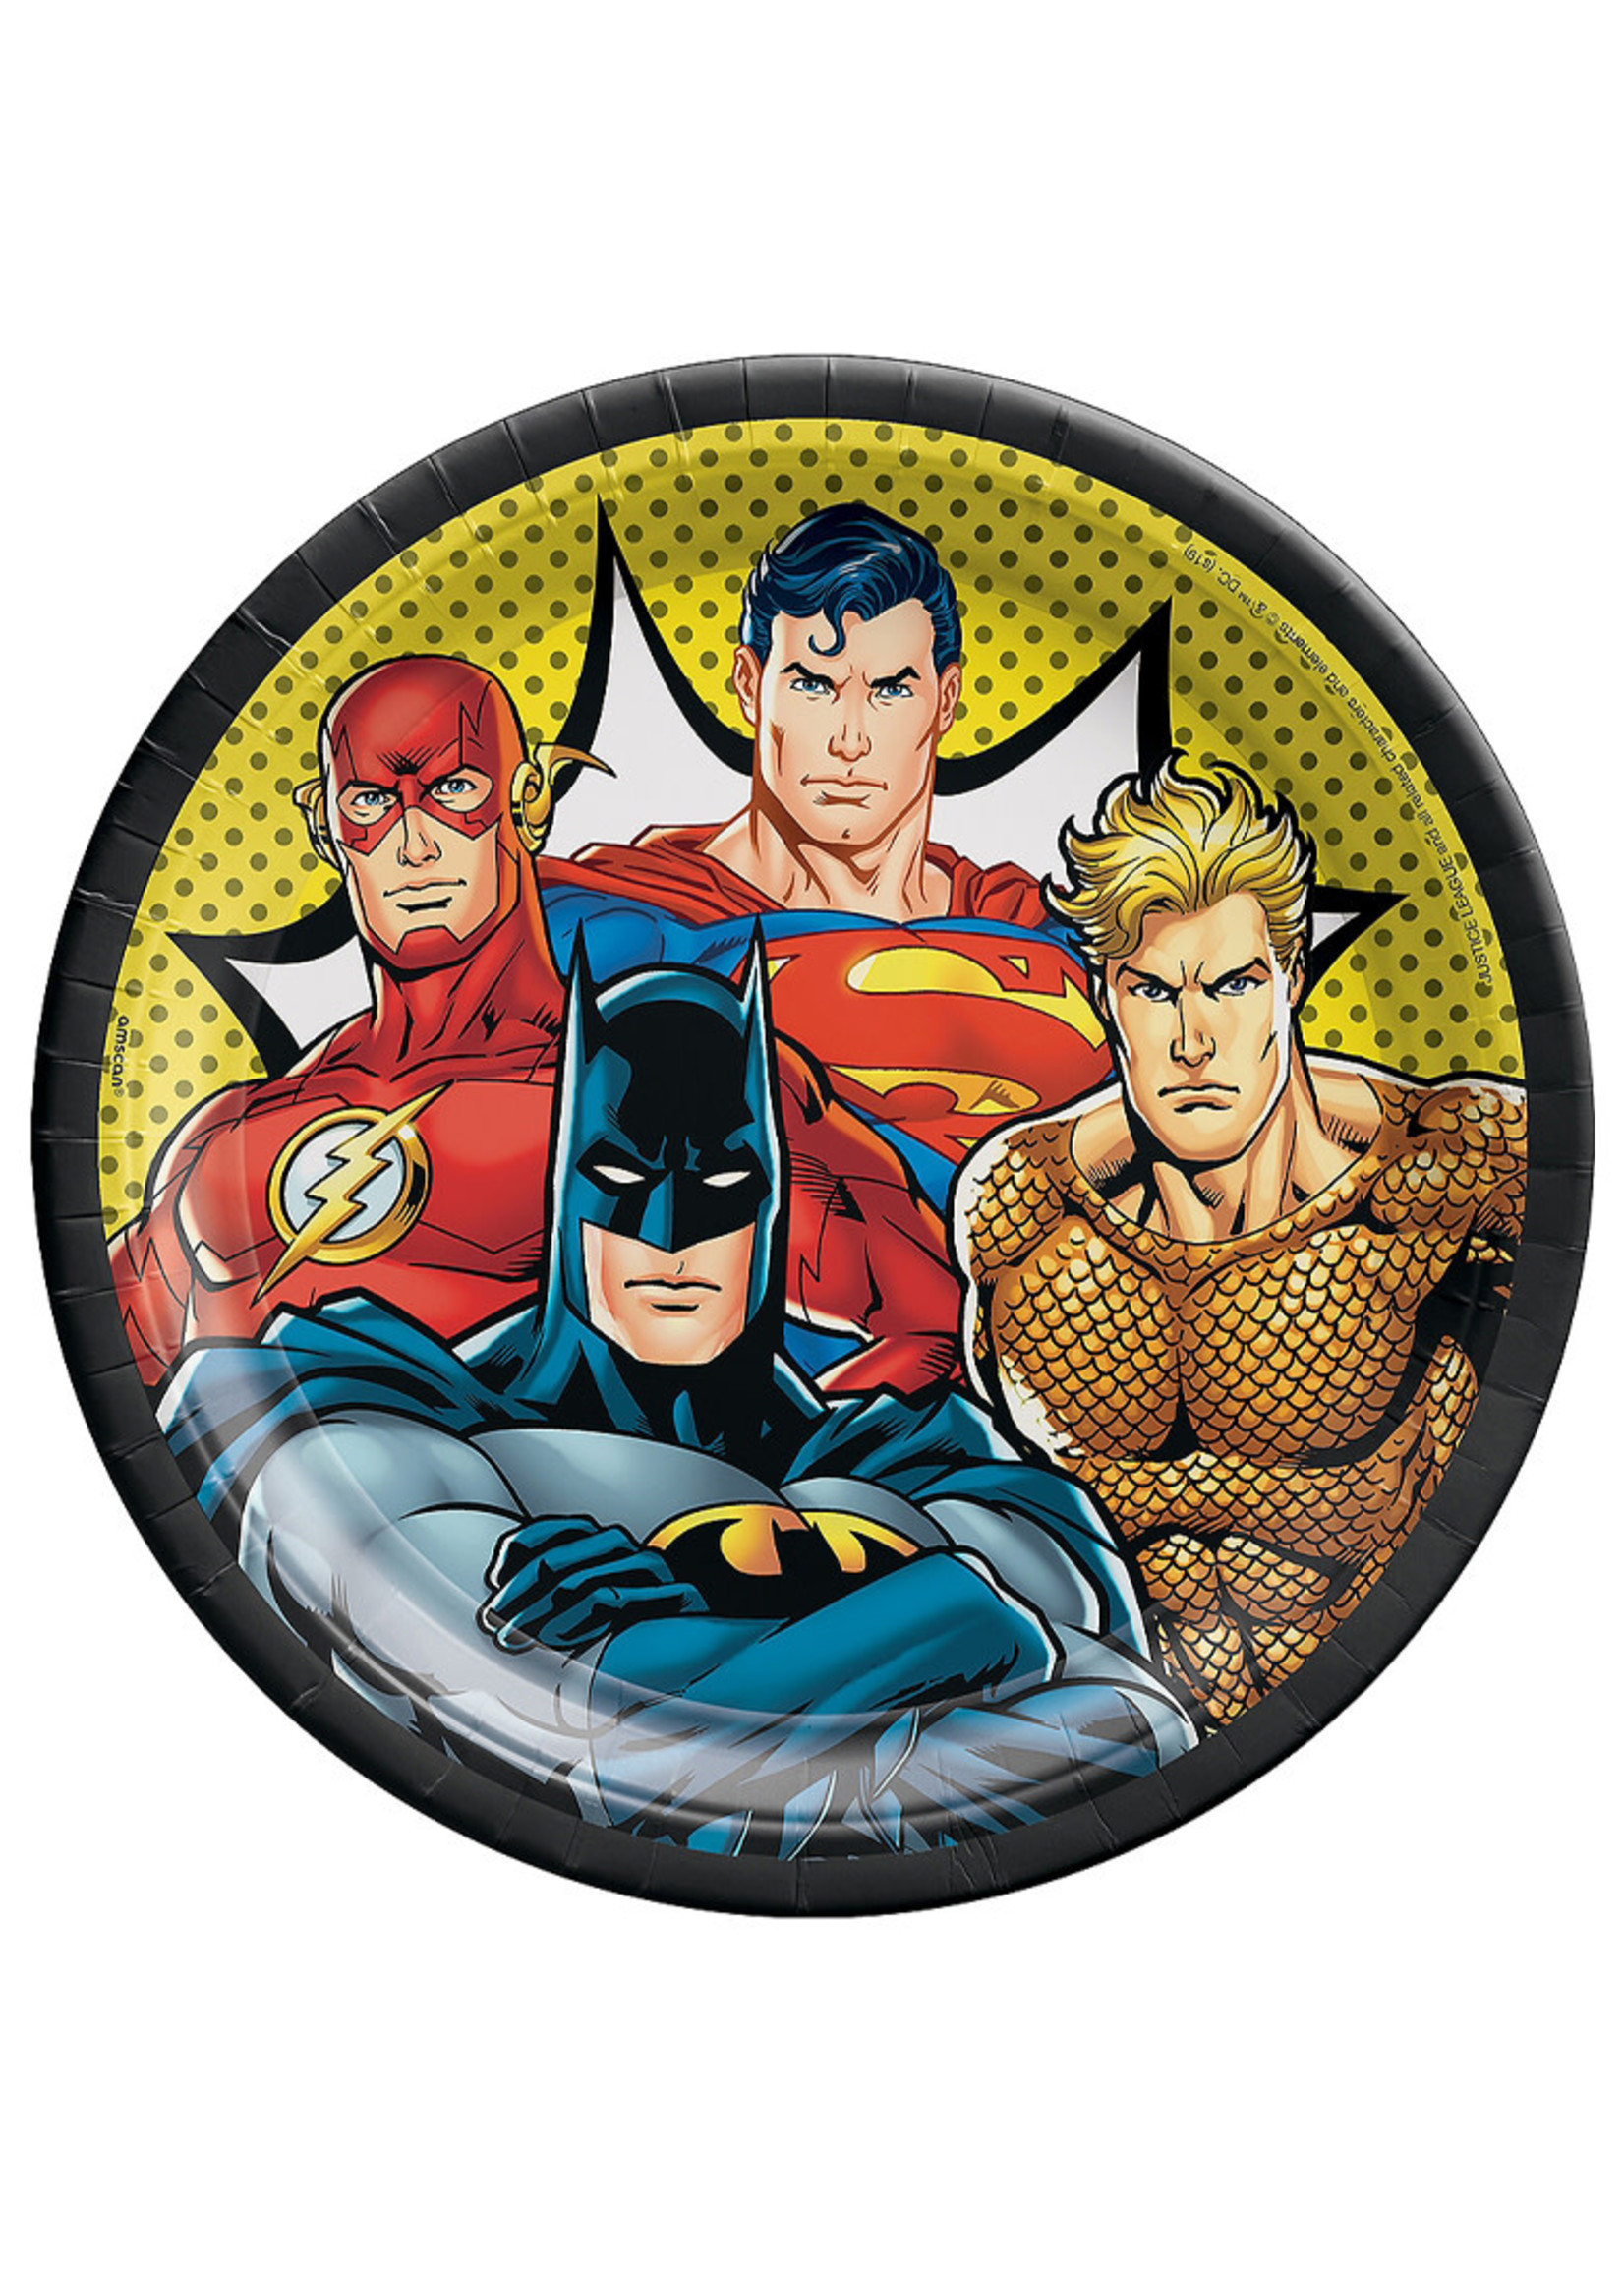 Justice League Heroes Unite Lunch Plates 8ct